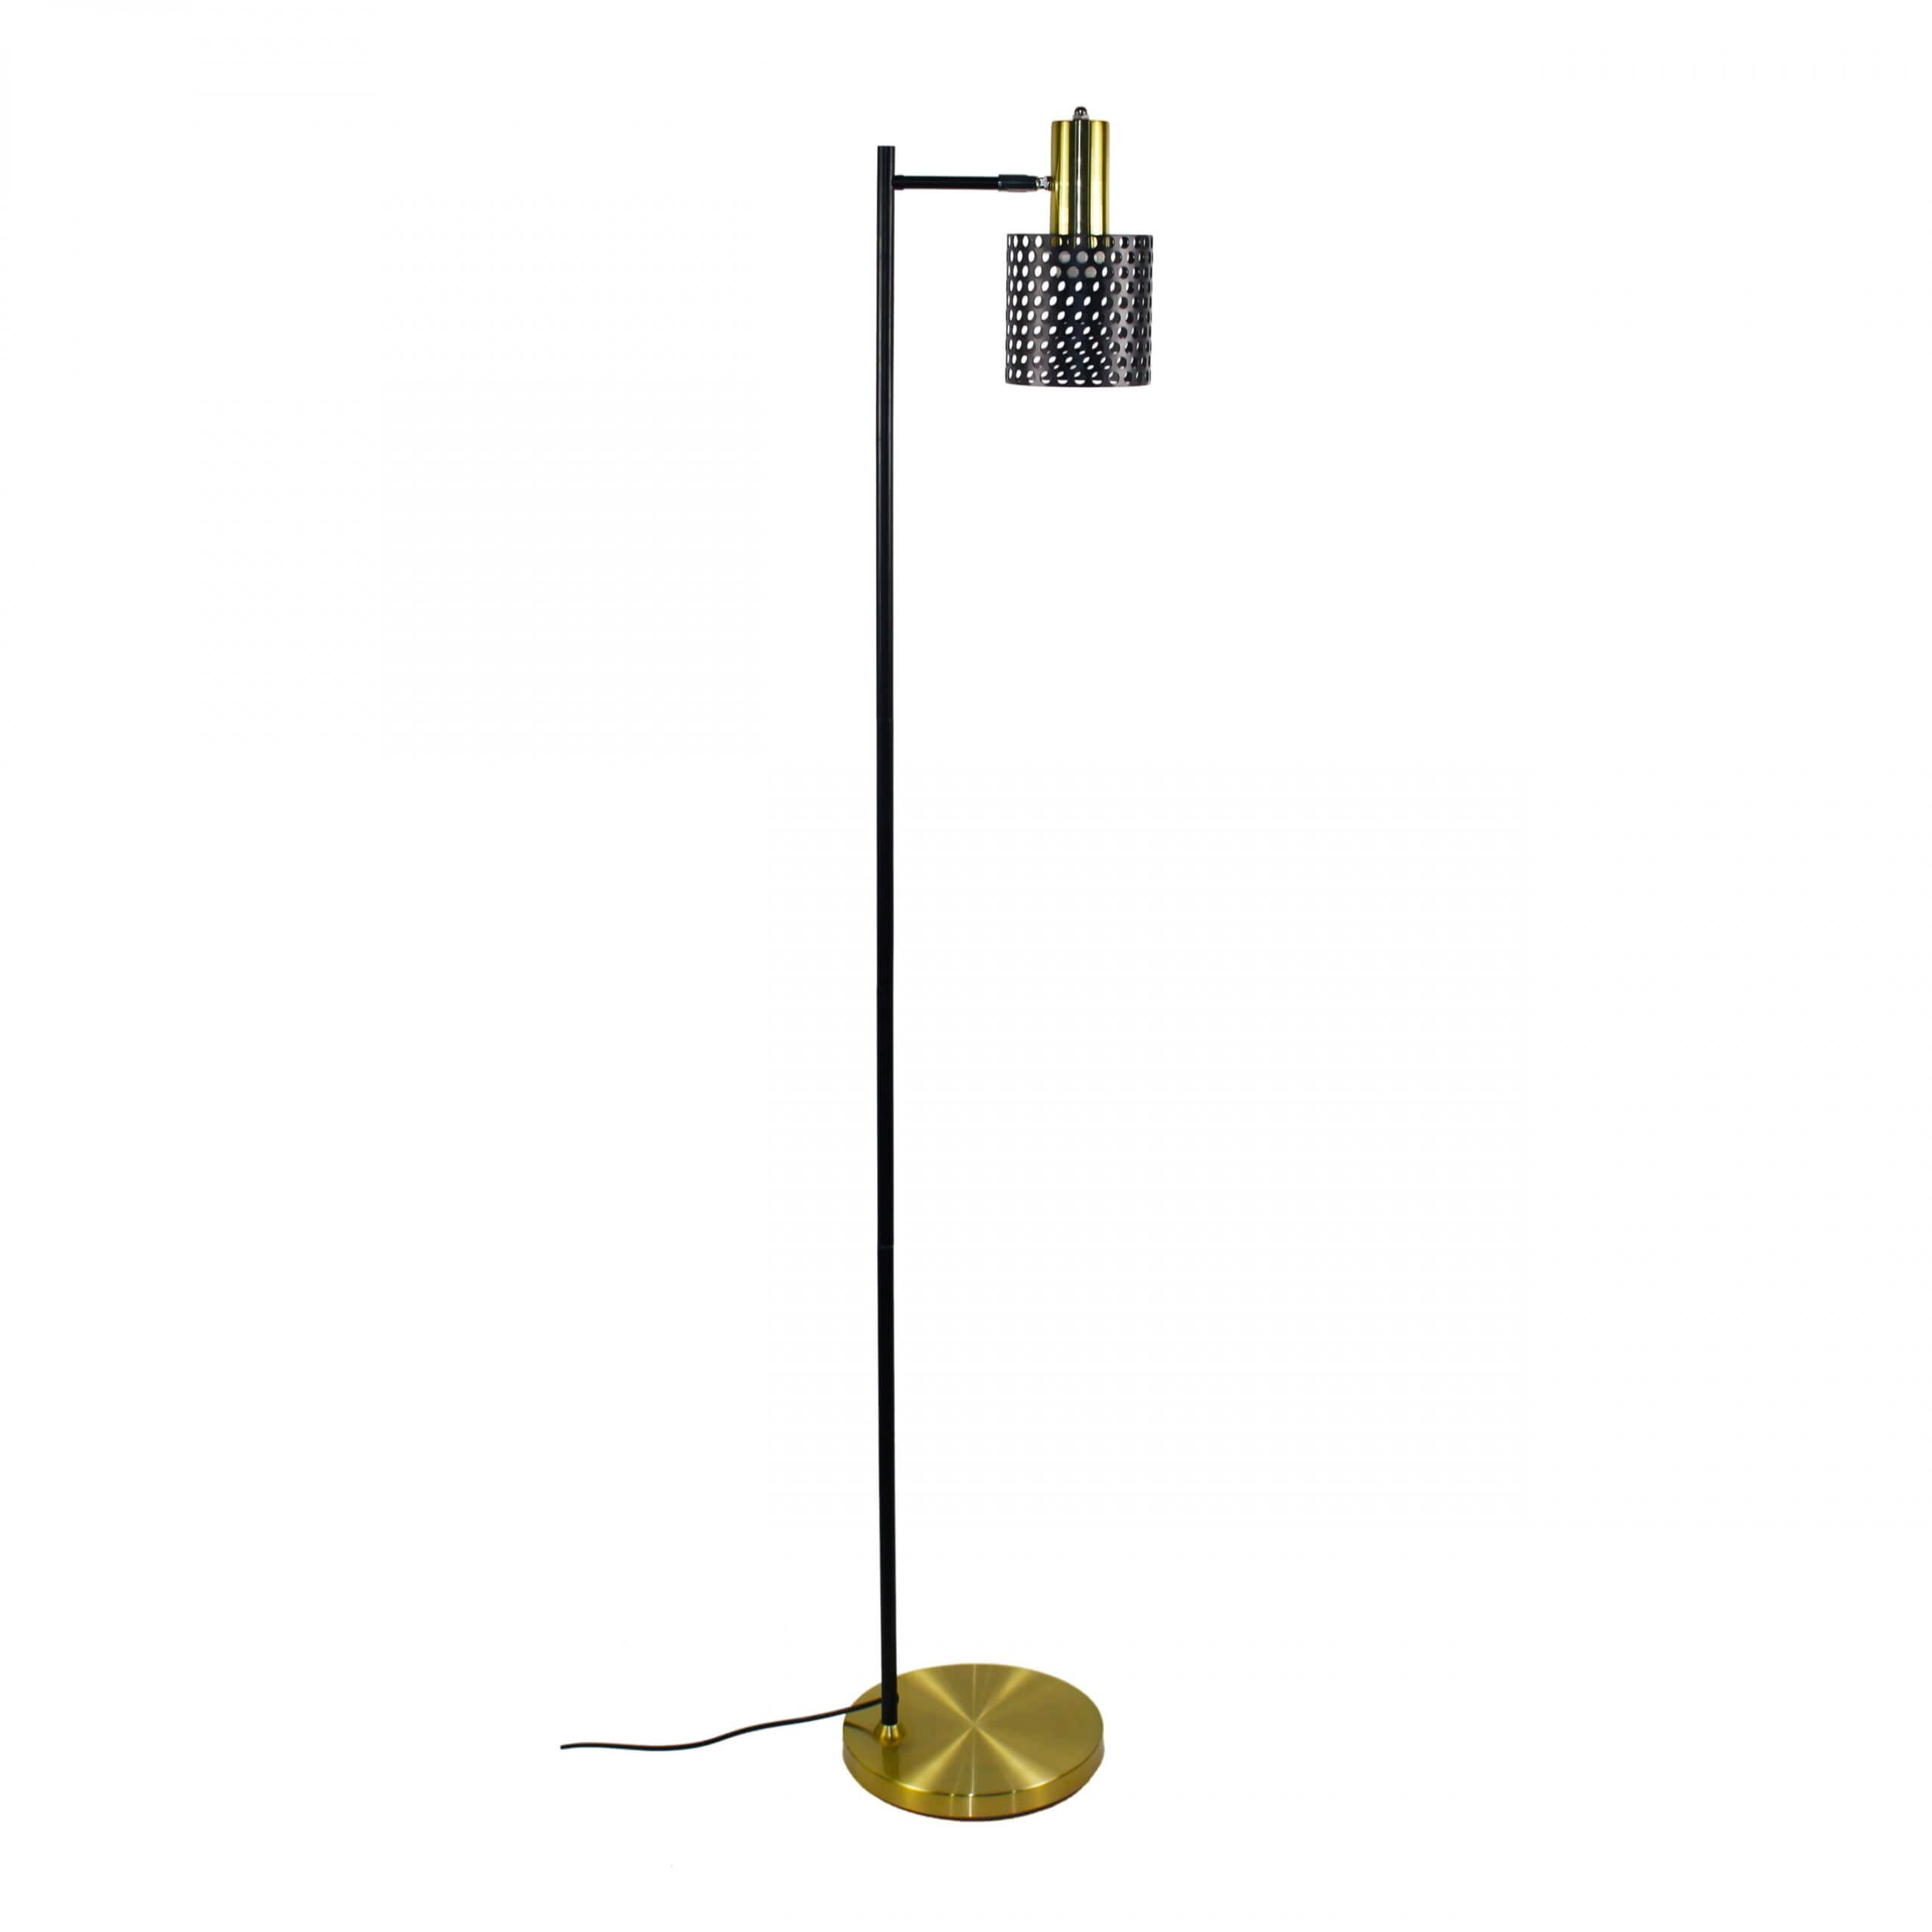 KL-F801 Floor lamp brass-coloured metal with black shade and pole from the Haunui International range